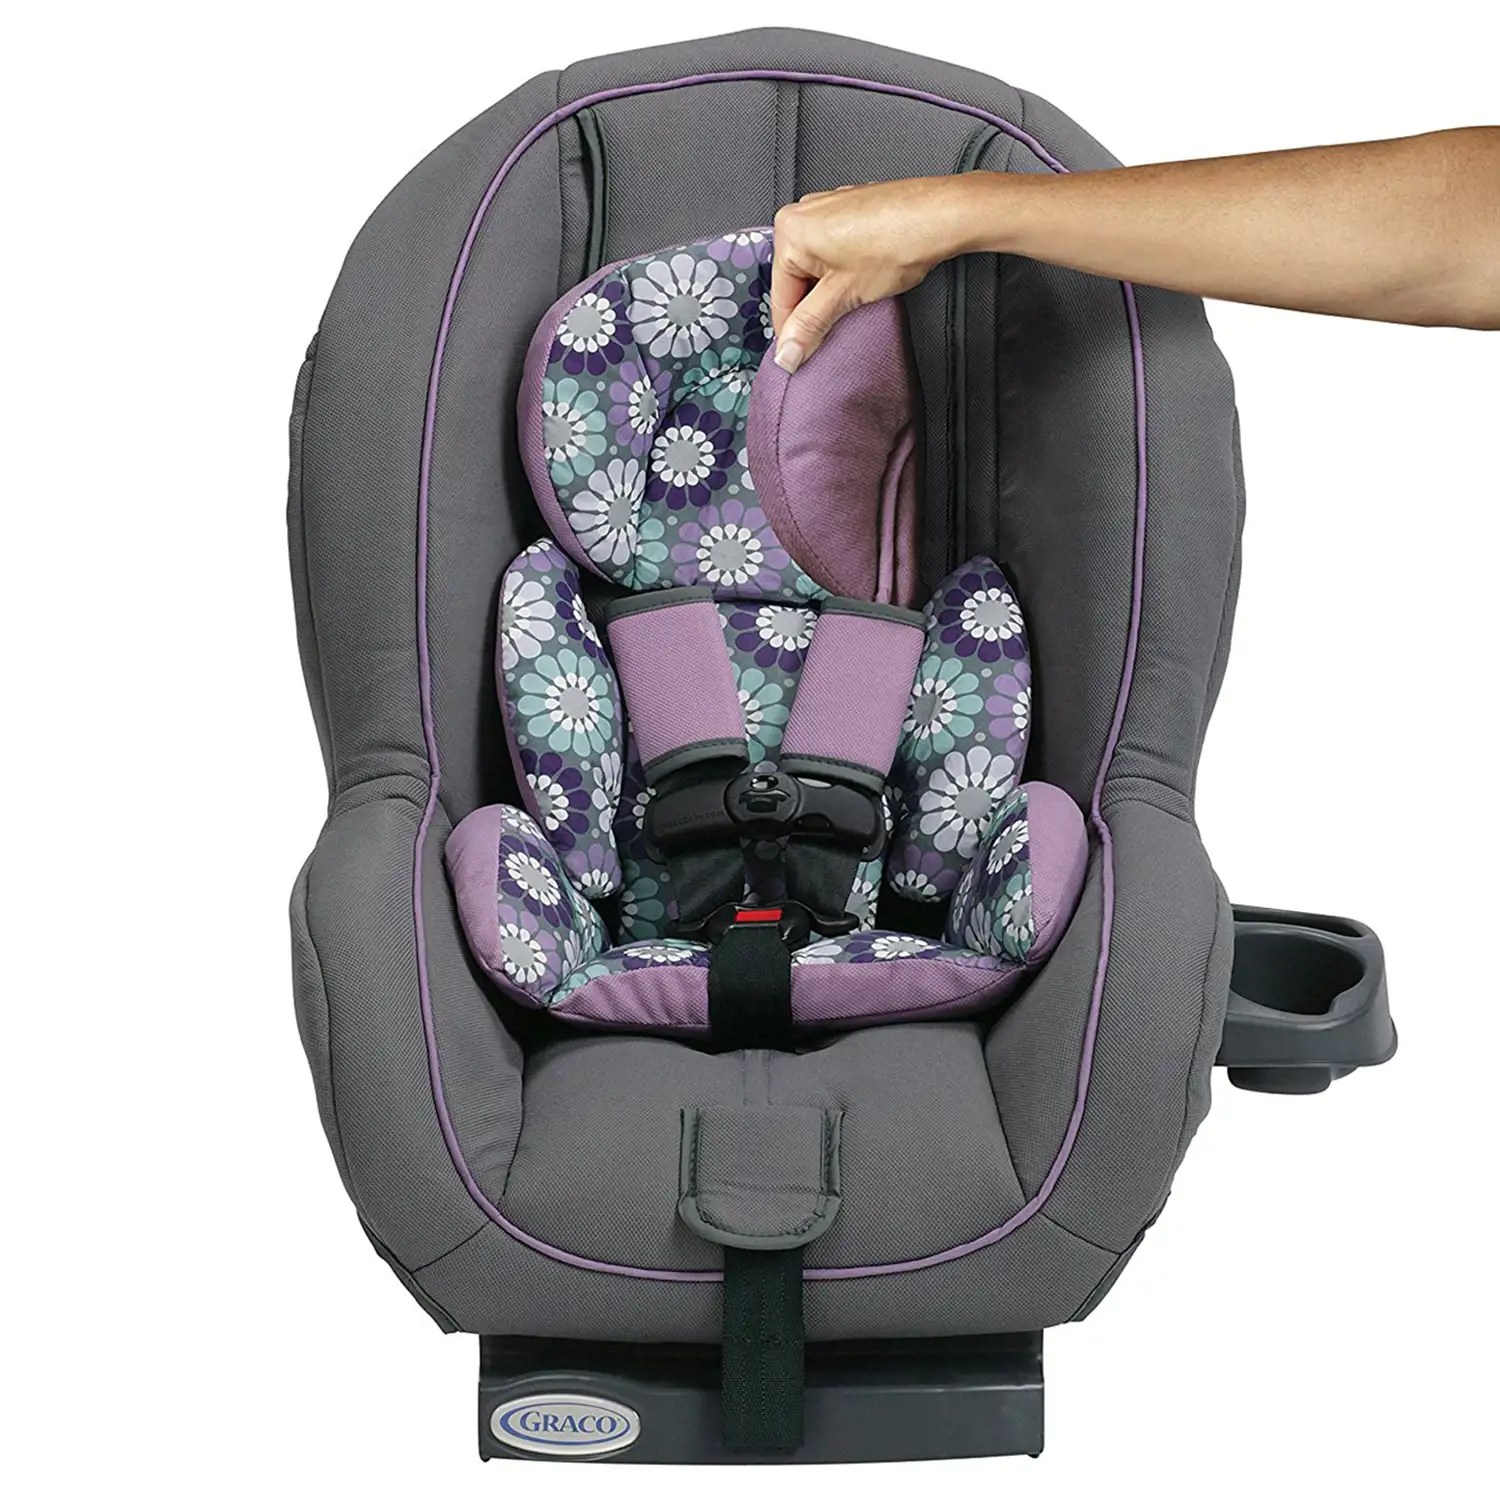 car seat desk chair conversion floral arm graco ready ride rear forward facing 5 point harness